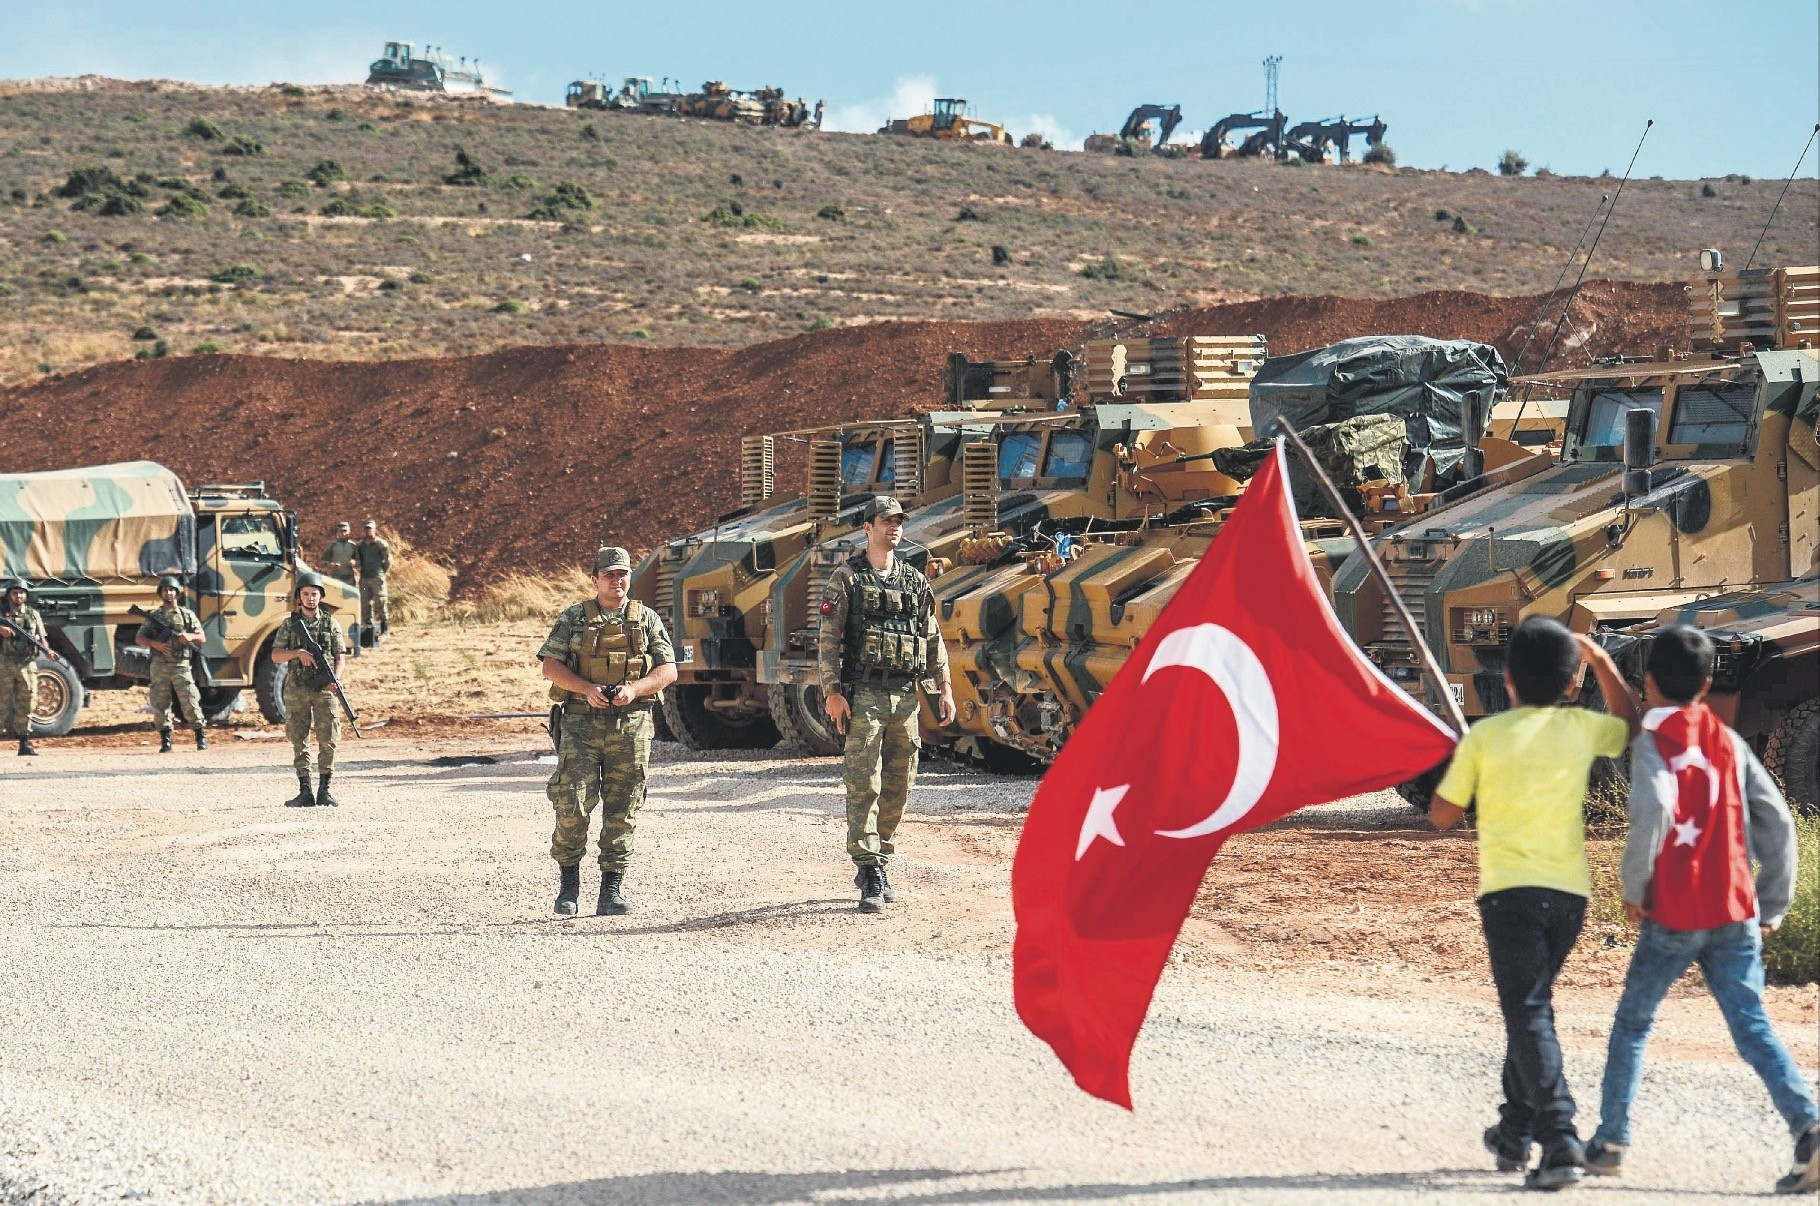 Turkish soldiers stand near armored vehicles as two young boys holding Turkish flags arrive during a demonstration in support of the Turkish armyu2019s Idlib offensive along the Turkey-Syria border near Reyhanlu0131, Hatay, Oct. 10, 2017.